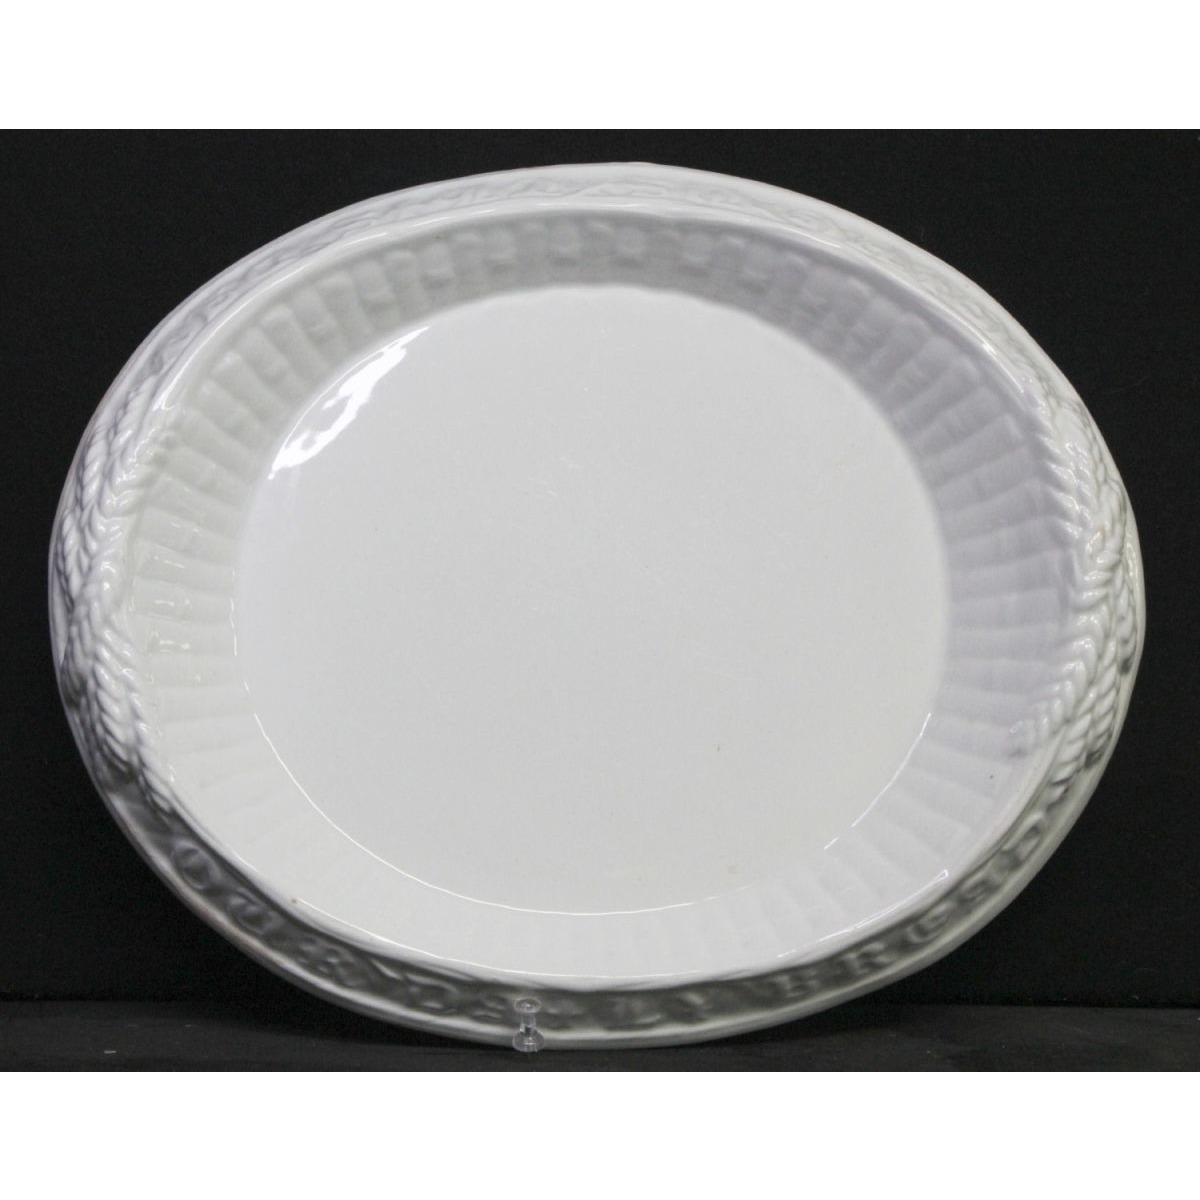 Unusual Bamboo Ironstone Bread Plate Give Us Our Daily Bread